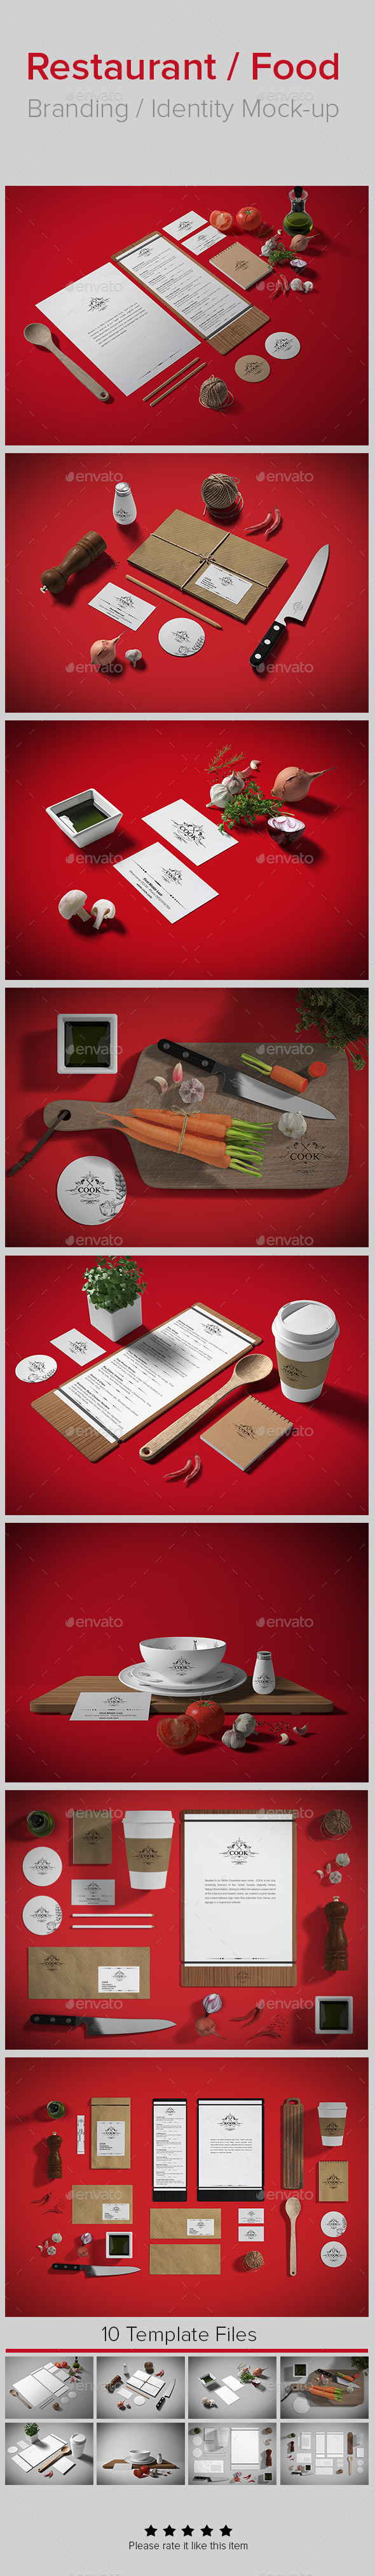 GraphicRiver Restaurant Food Branding Identity Mock-up 8908478